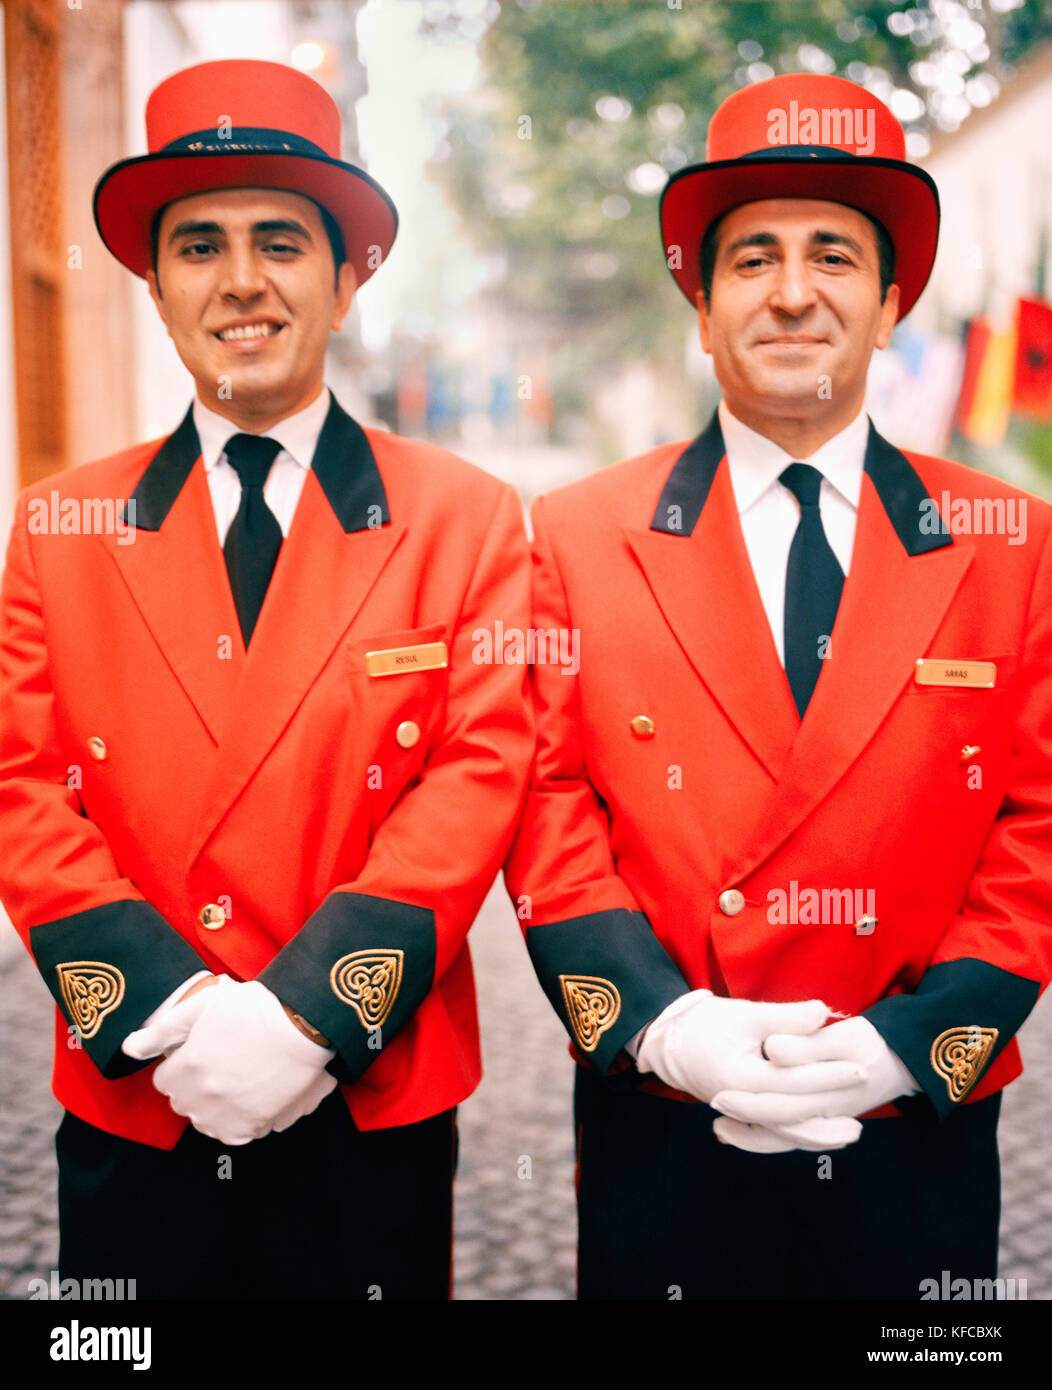 TURKEY, Istanbul, portrait of two bellboys standing side by side at the Hotel Kempinski. - Stock Image